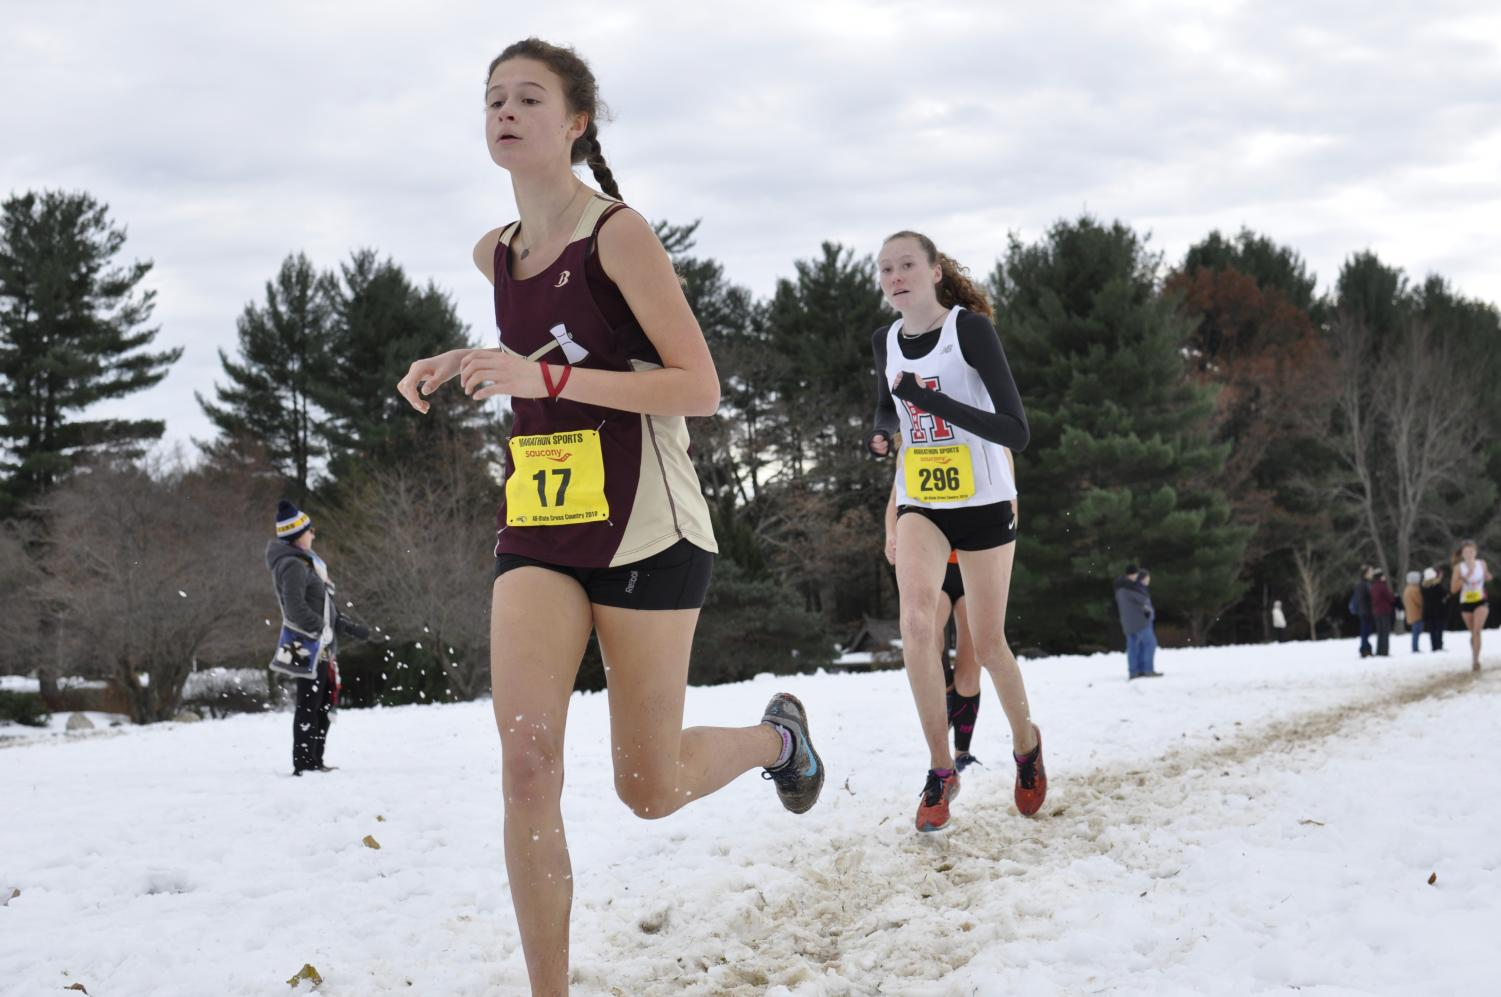 Junior Julia Kardos  runs past her opponent on the snowy trail at Stanley Park for the All-State meet on November 18.